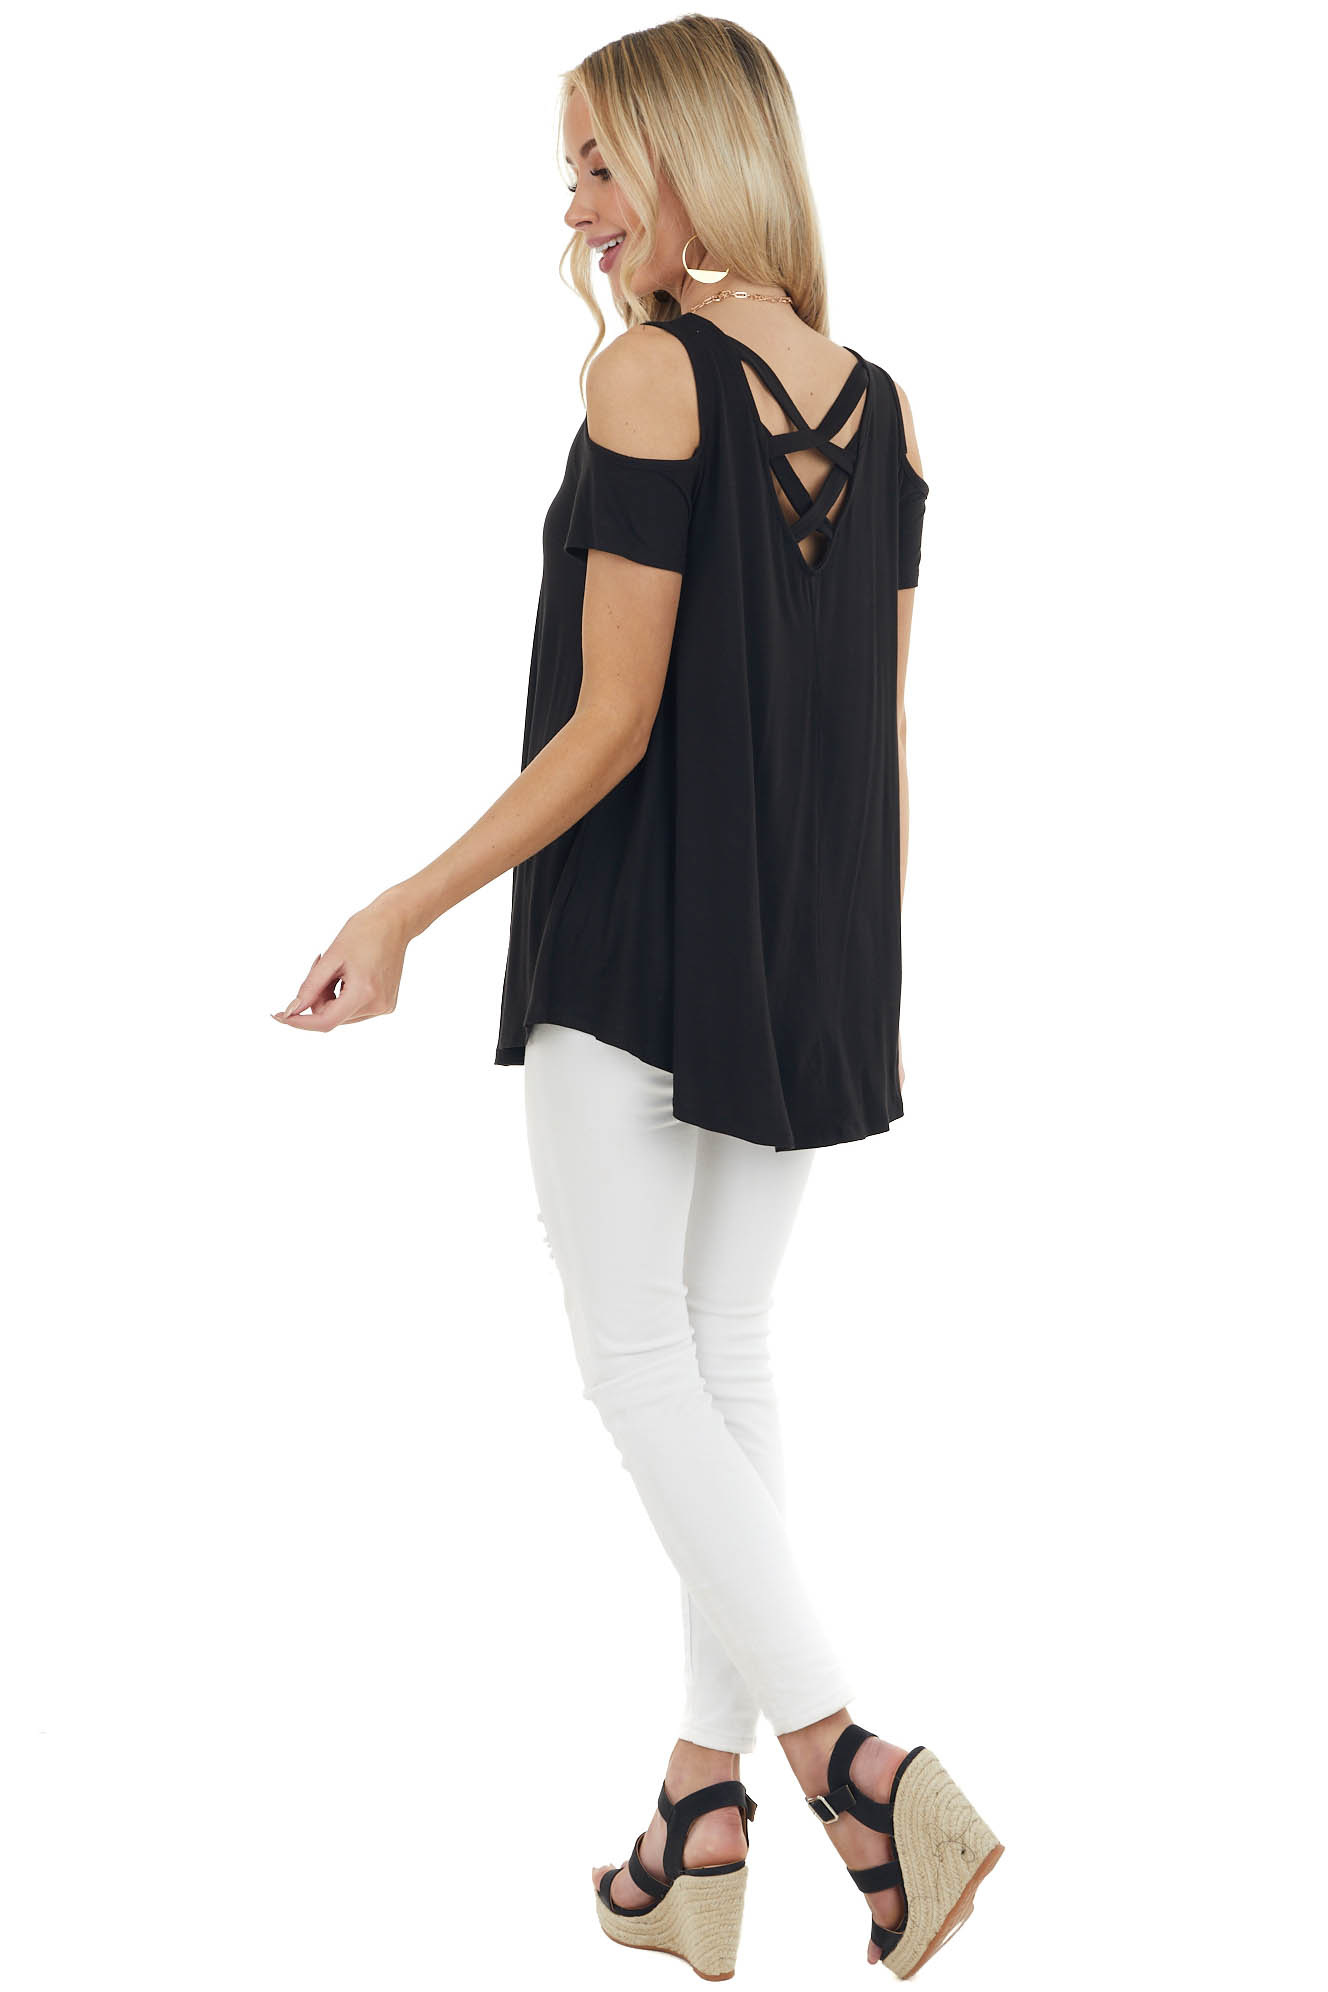 Jet Black Cold Shoulder Top with Criss Cross Back Detail